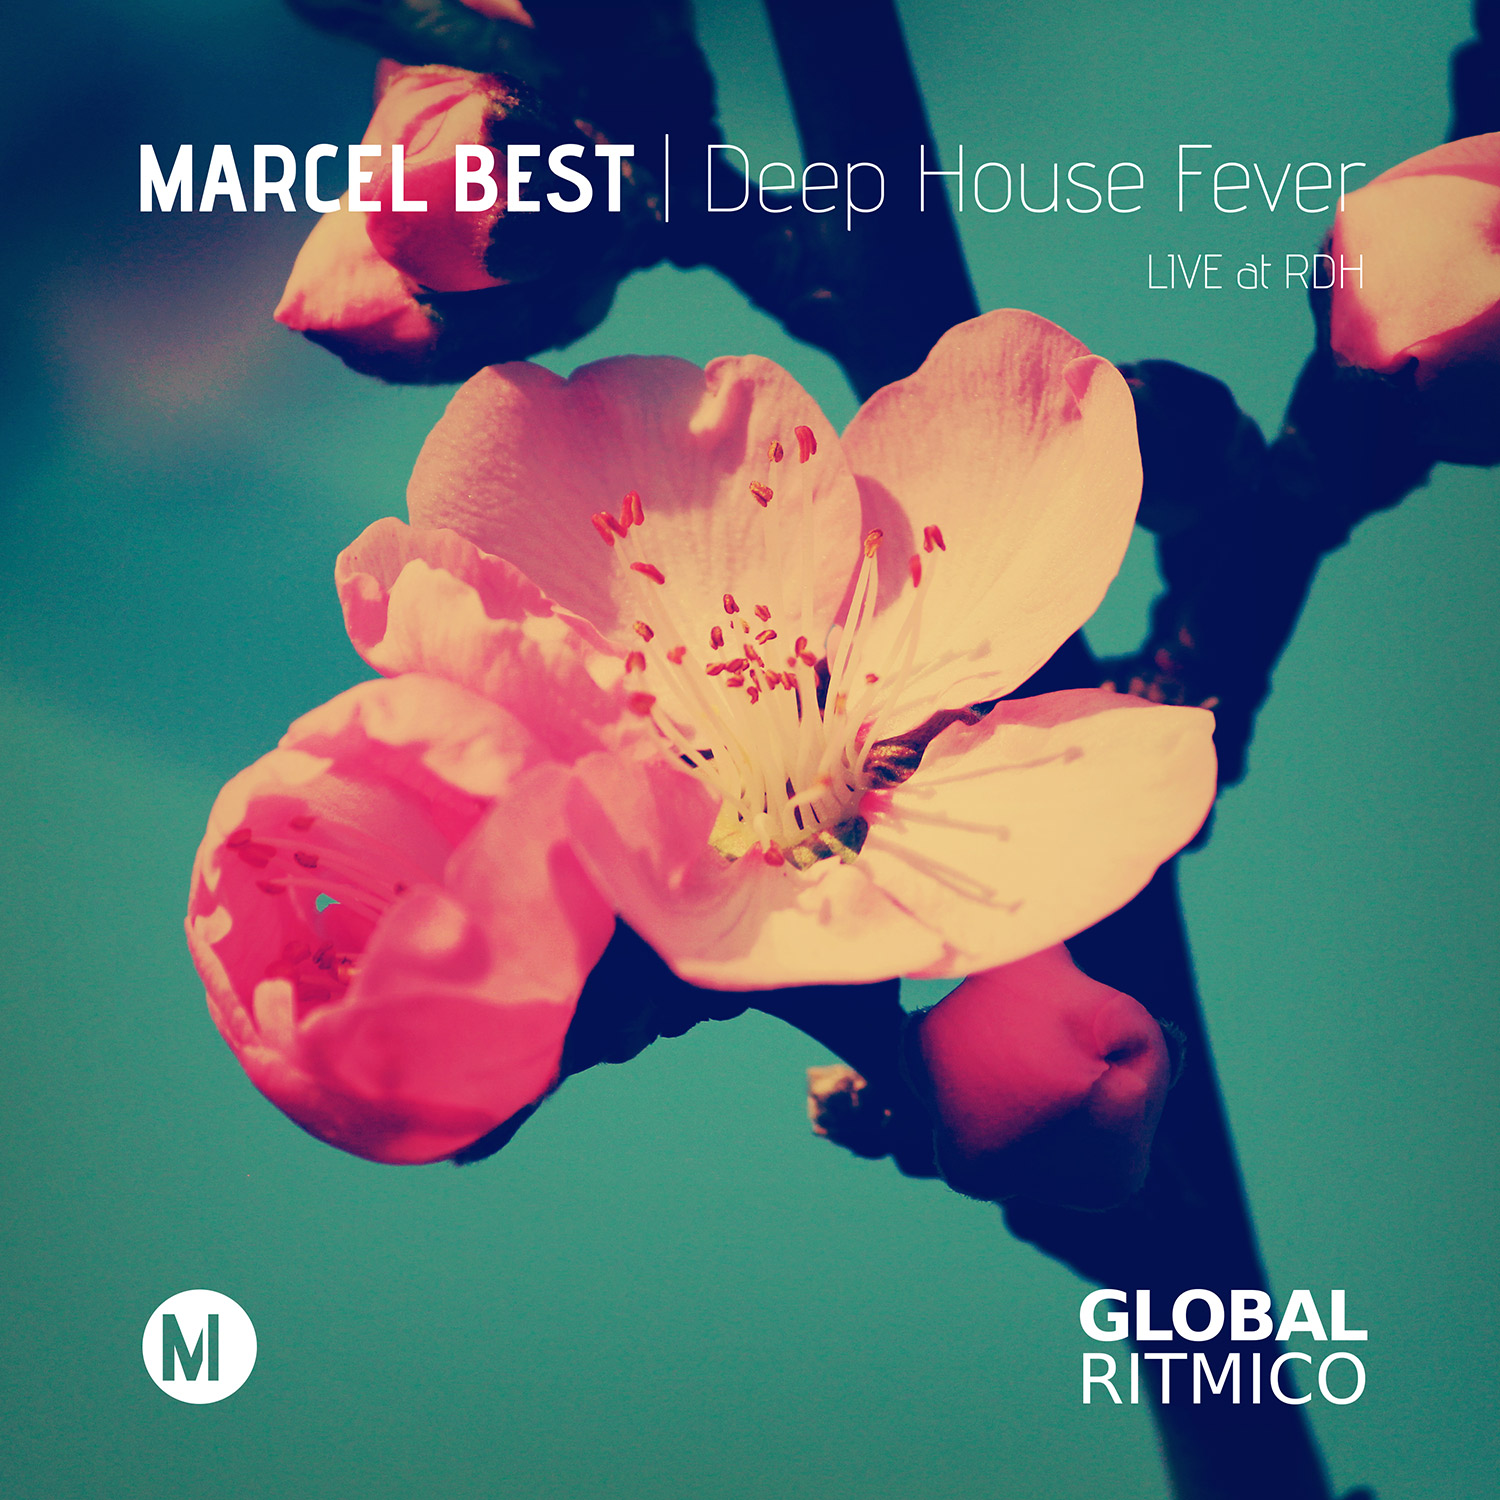 Marcel Best - LIVE at RDH